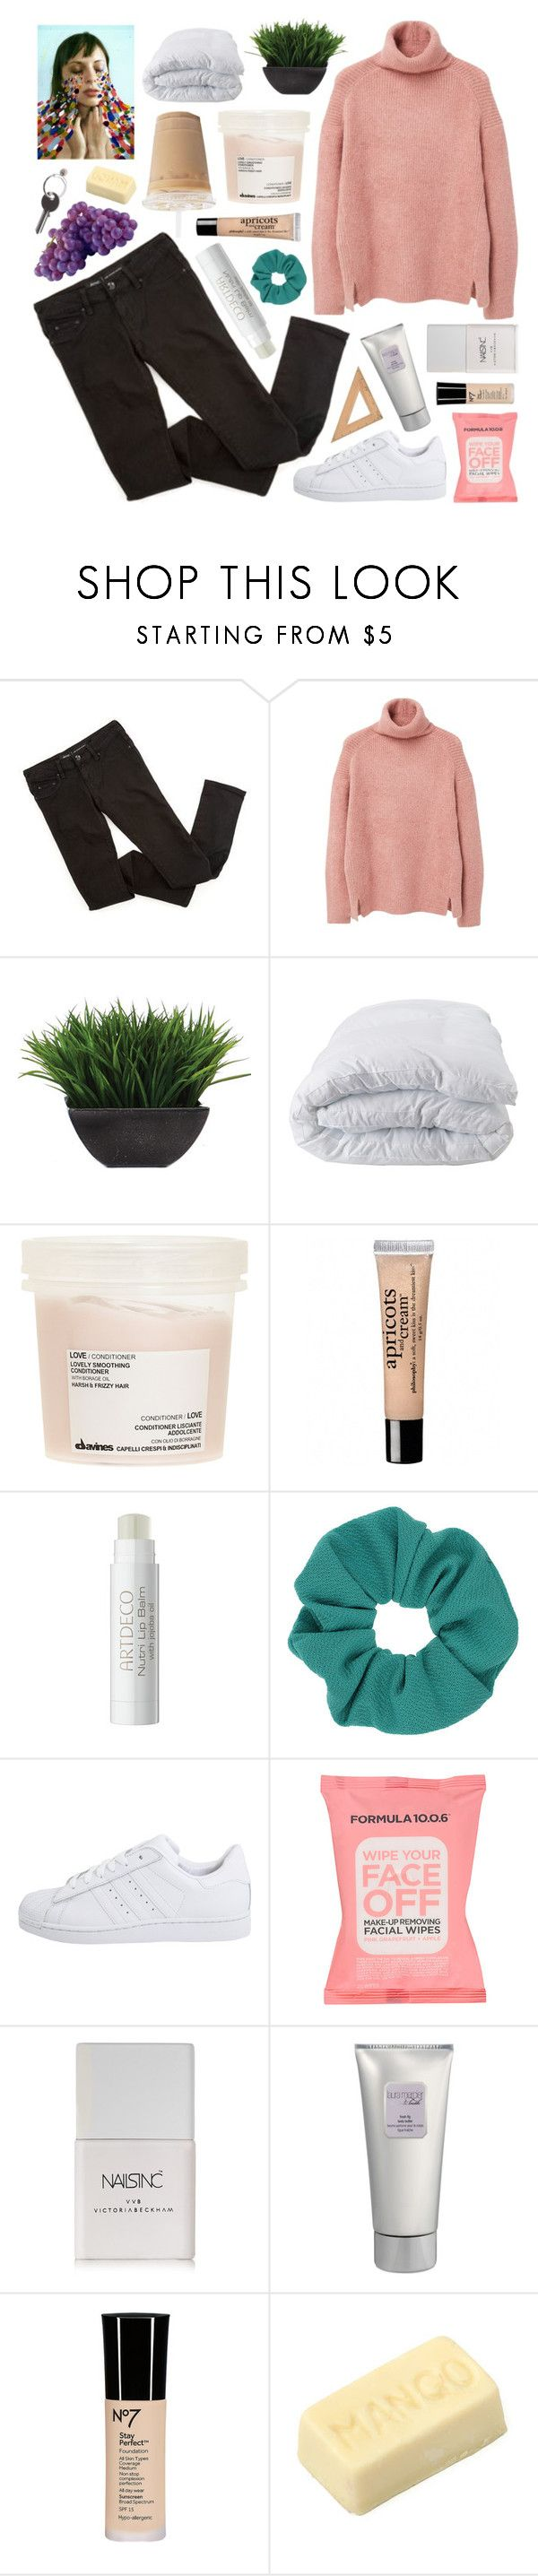 """""""i would do anything for you"""" by deep-breaths ❤ liked on Polyvore featuring MANGO, Lux-Art Silks, Soft-Tex, Davines, philosophy, Topshop, adidas Originals, Formula 10.0.6, Nails Inc. and Laura Mercier"""